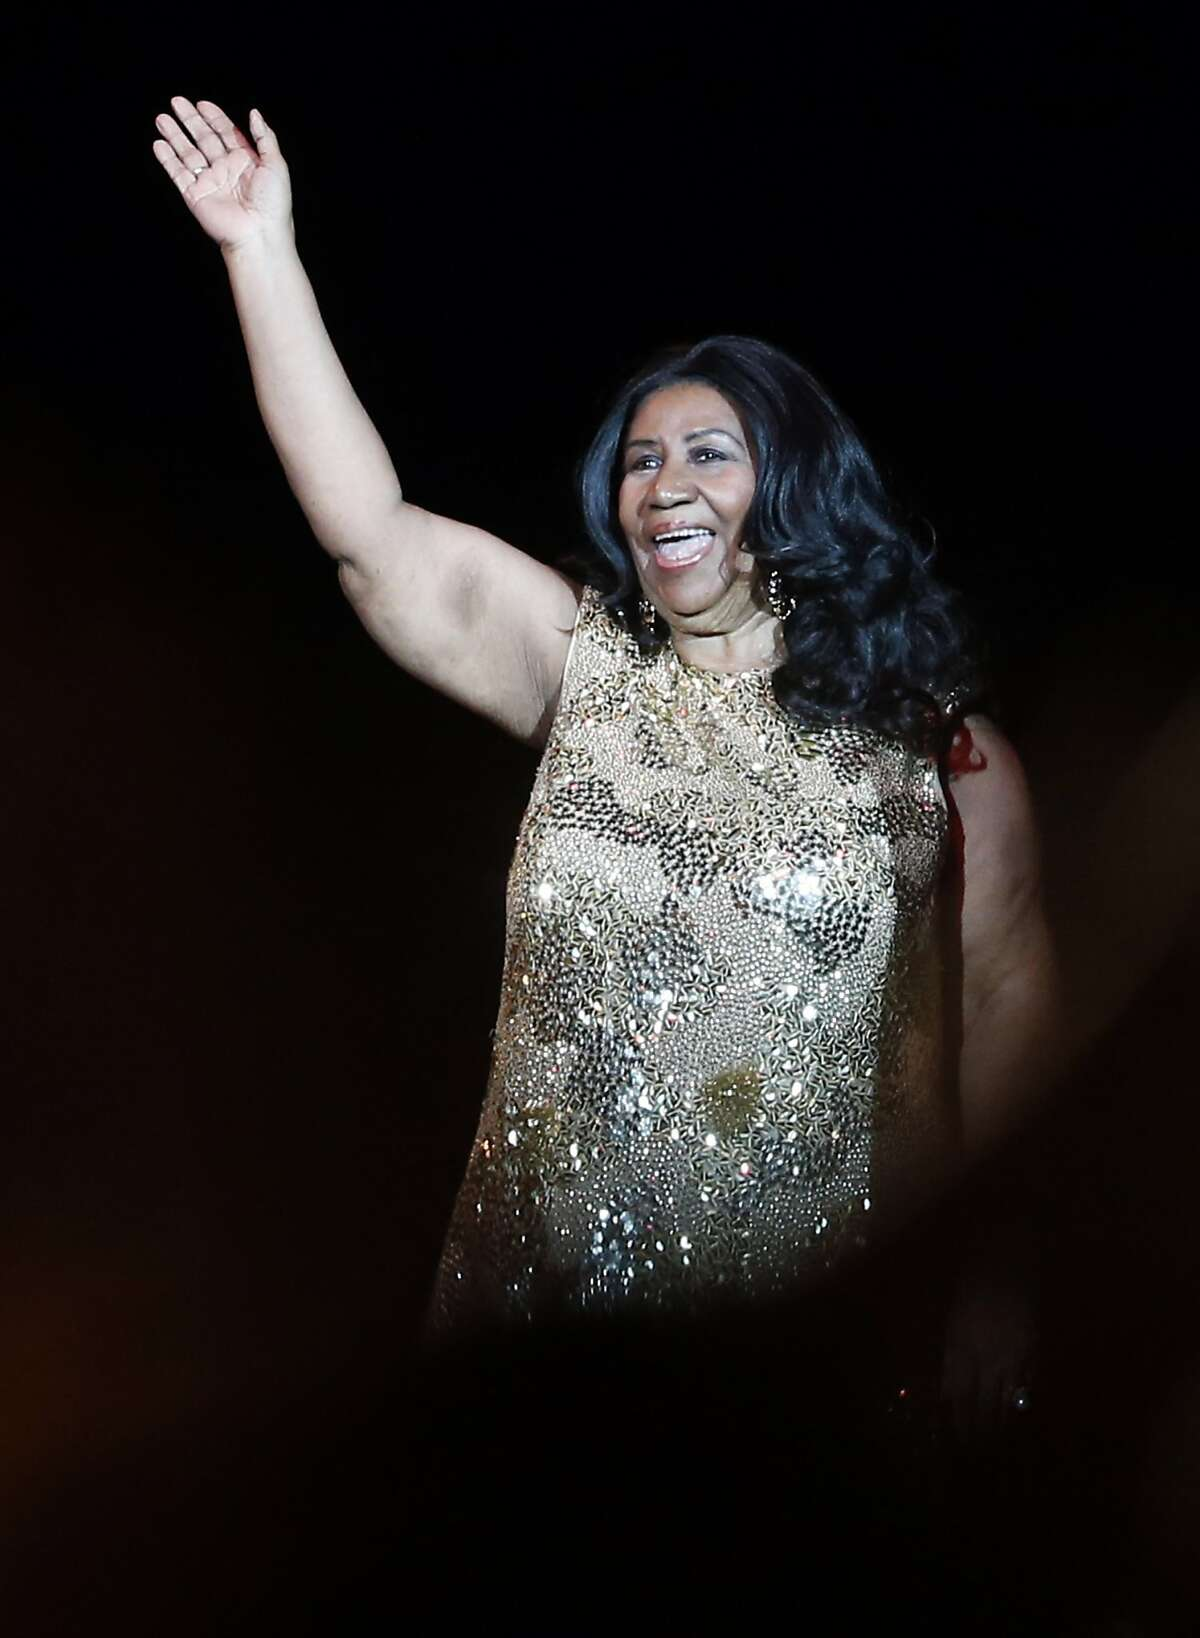 Aretha Franklin acknowledges the crowd as she takes to the stage to perform at Oracle Arena in Oakland, Calif., on Monday, Aug. 10, 2015.